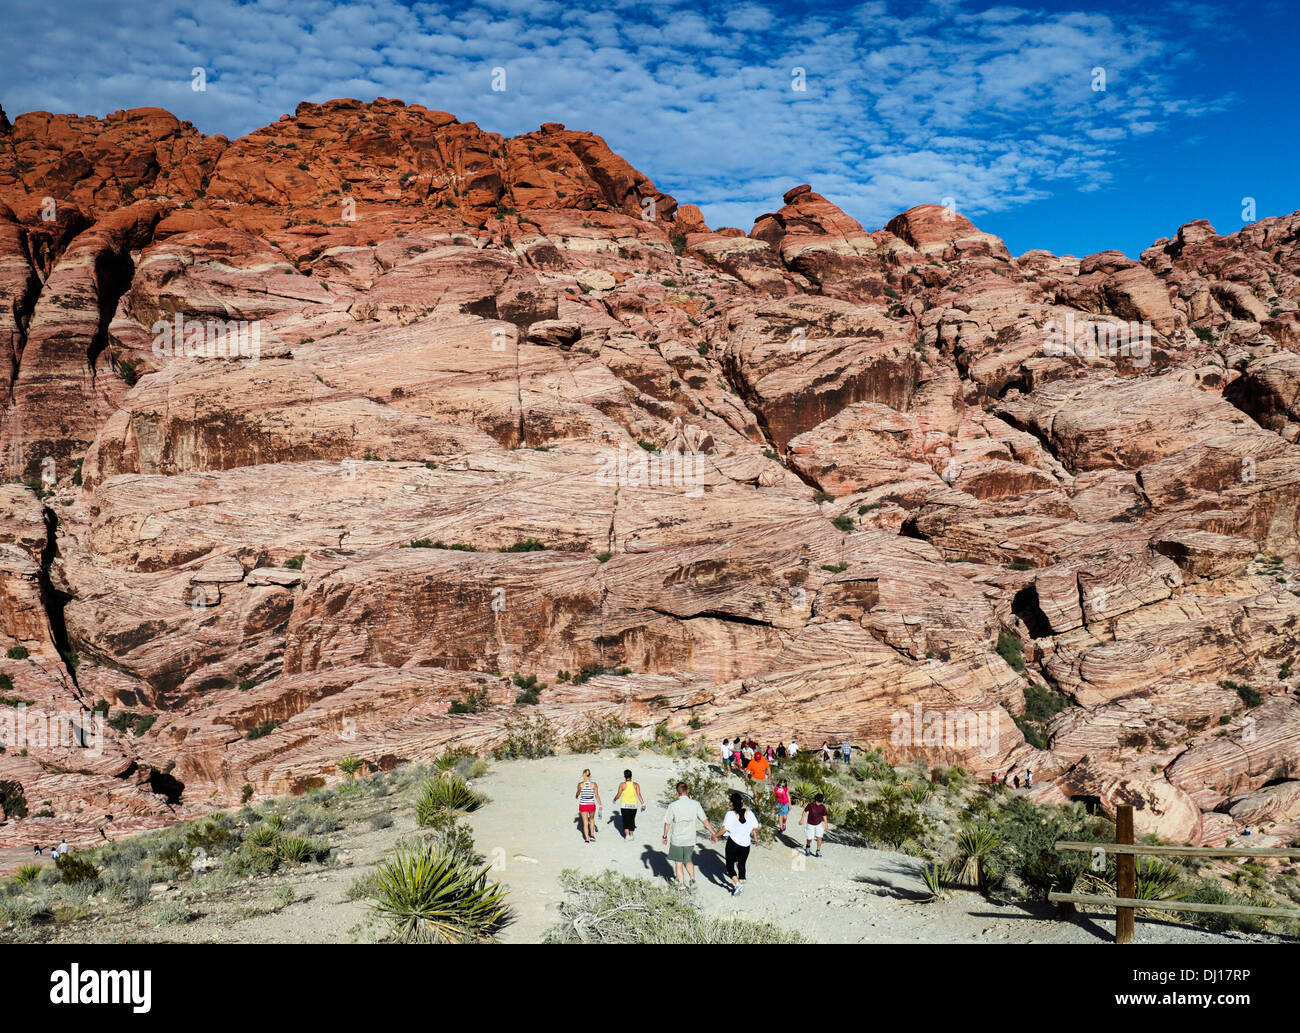 Visitors explore Red Rock Canyon National Conservation Area, about 20 miles from Las Vegas - Stock Image